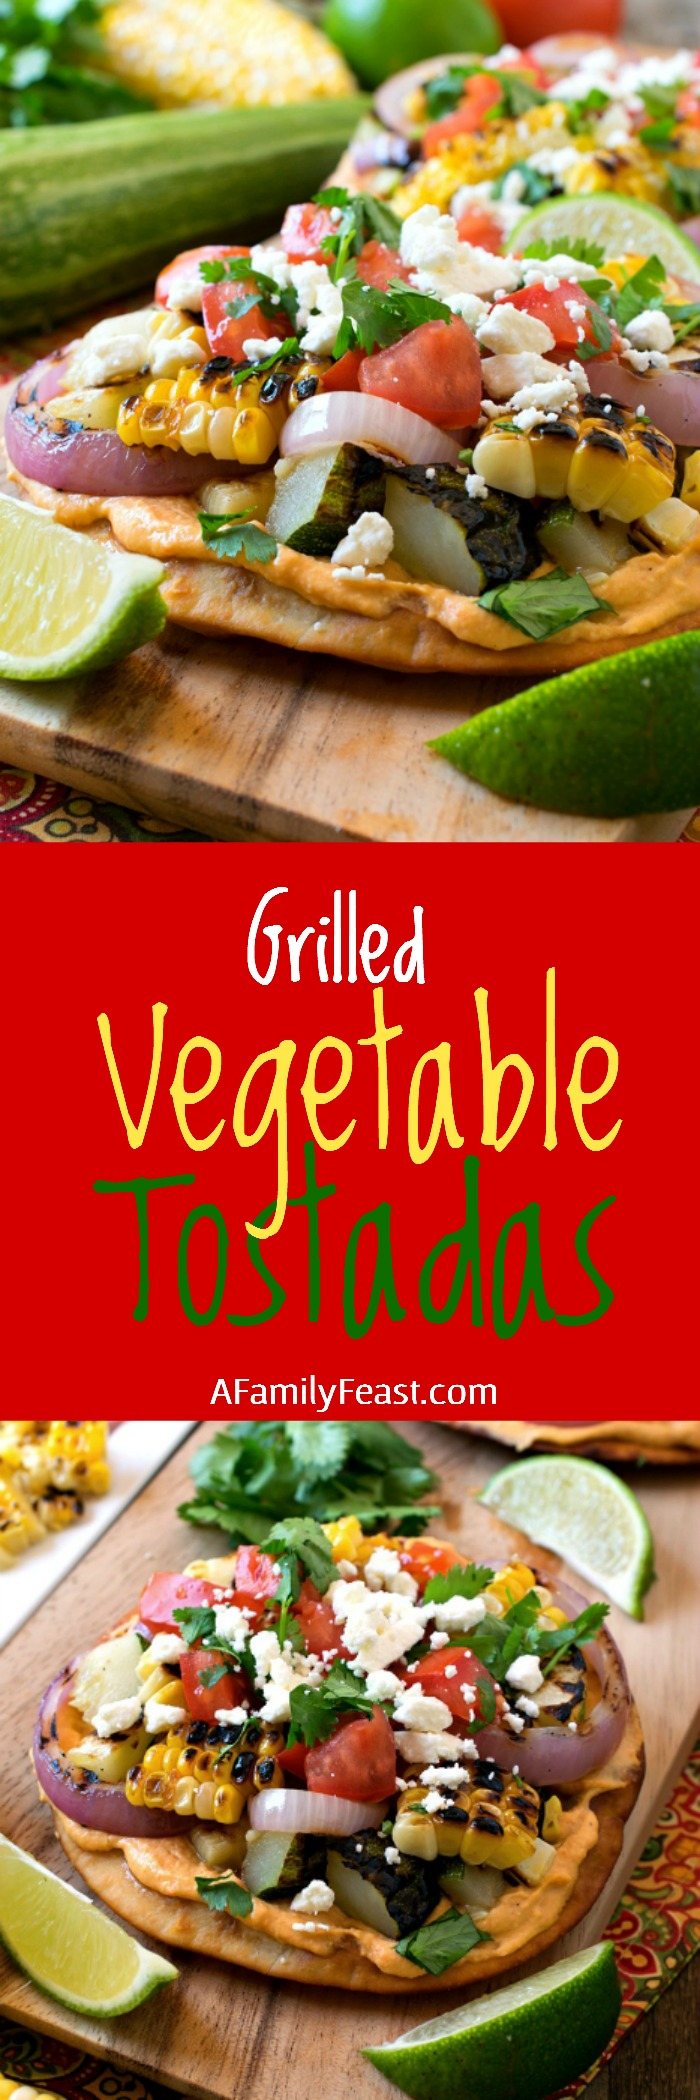 Grilled Vegetable Tostadas - A delicious meal made with fresh garden vegetables.